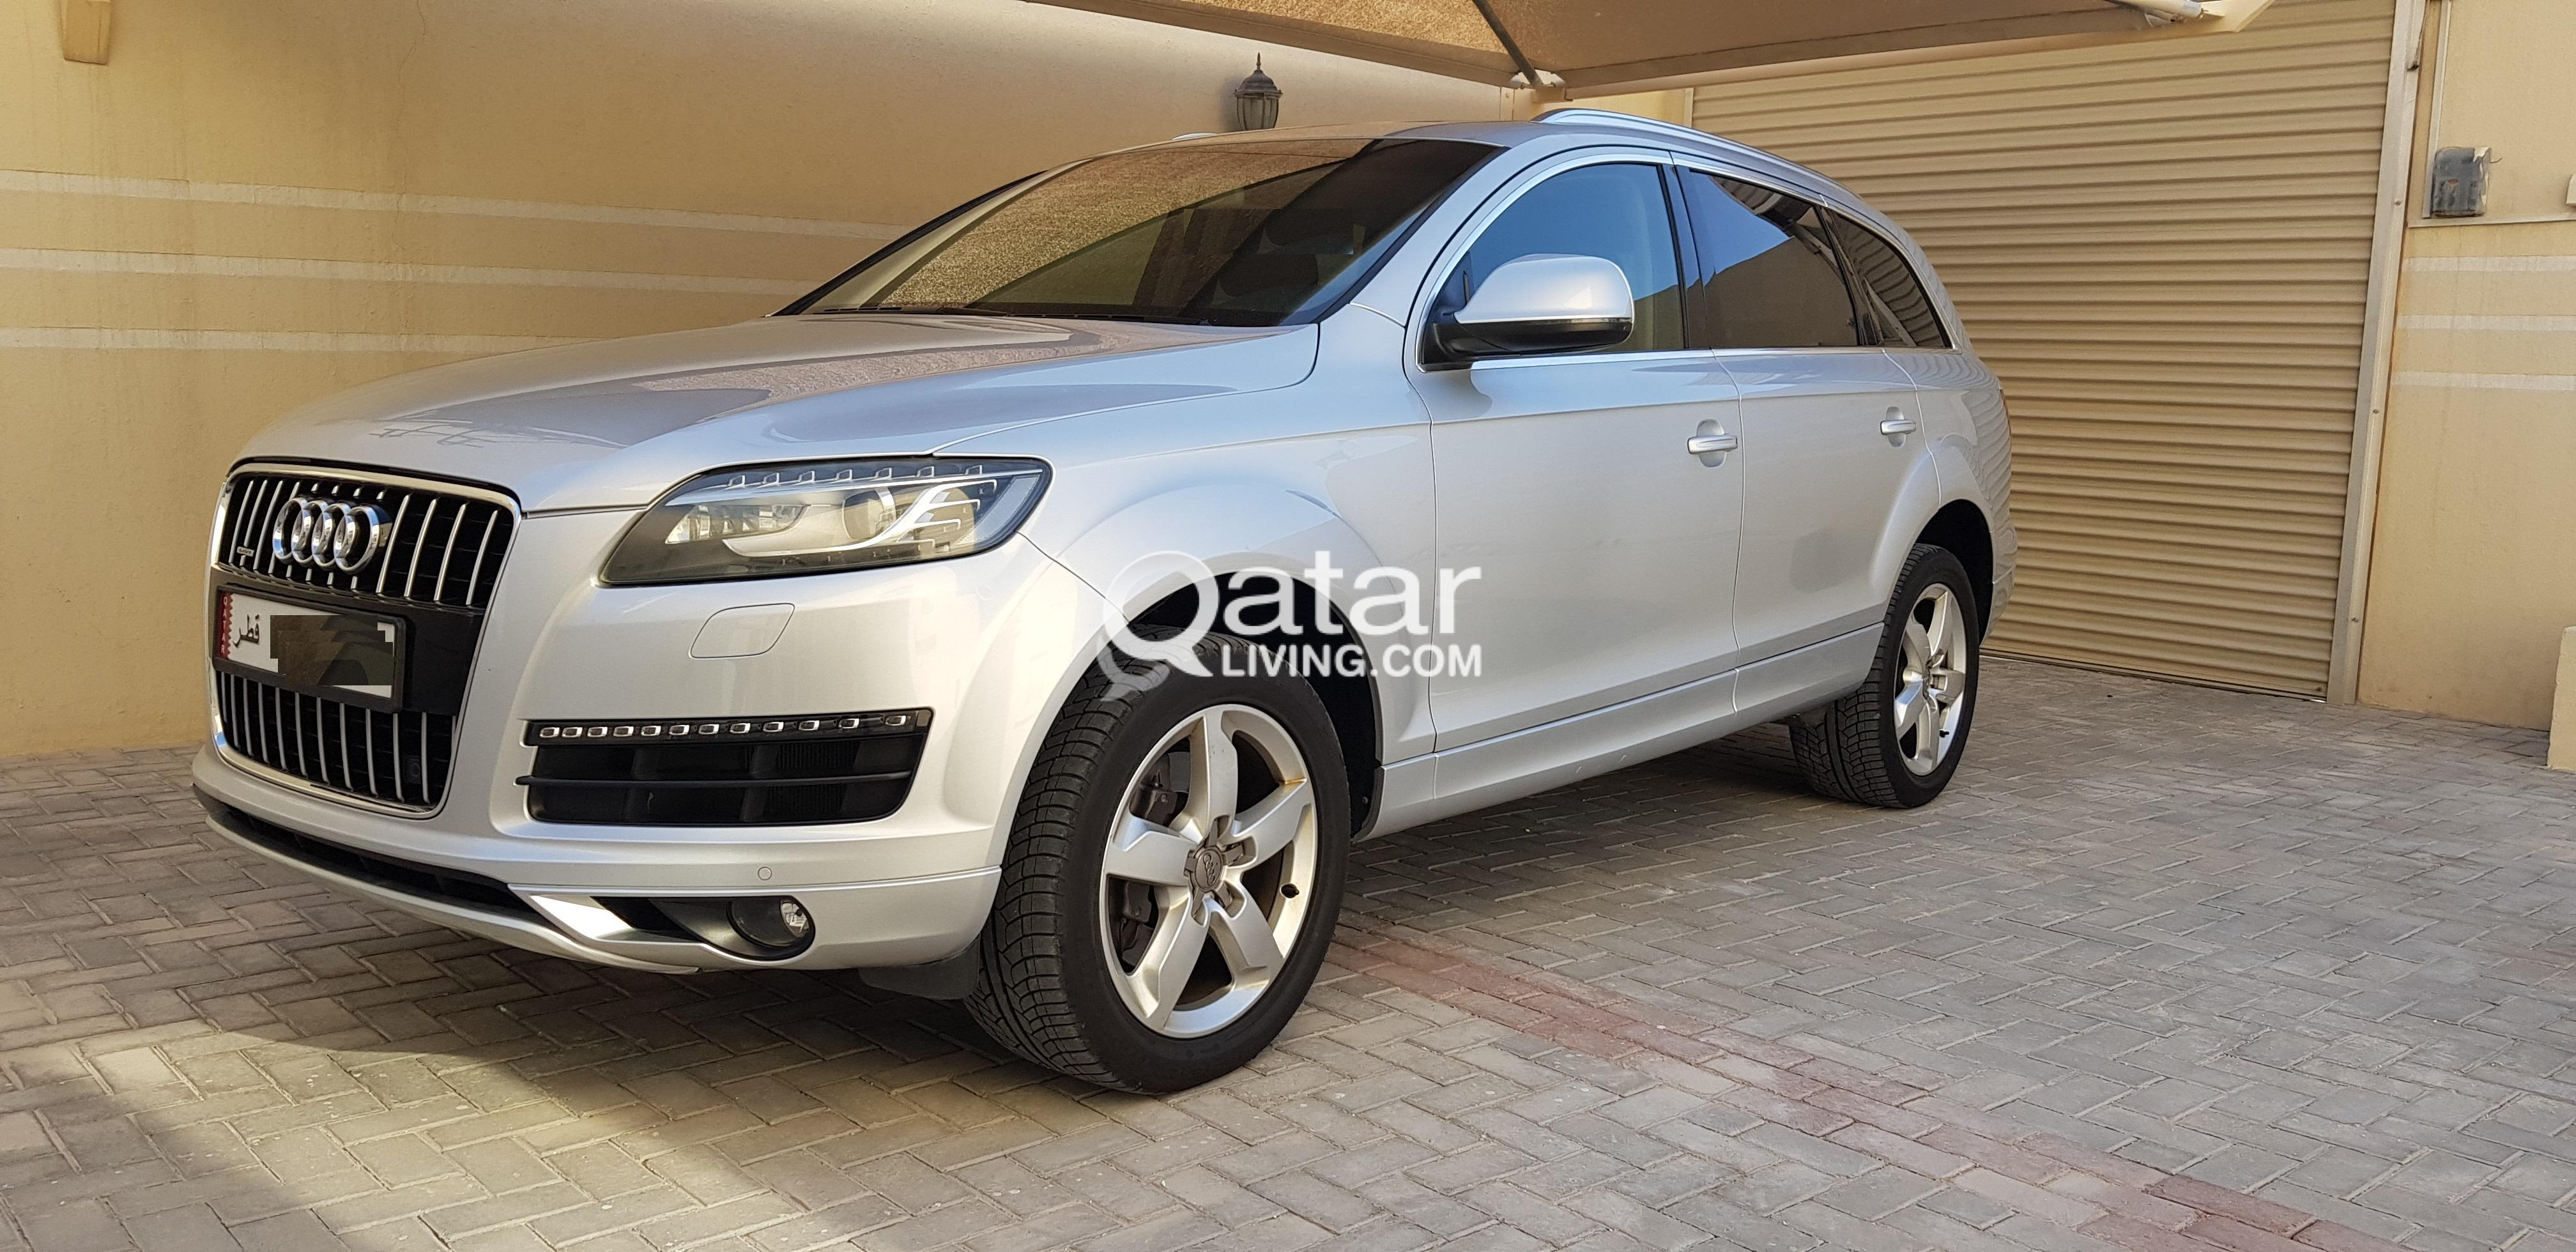 pictures audi and auto information specs database com